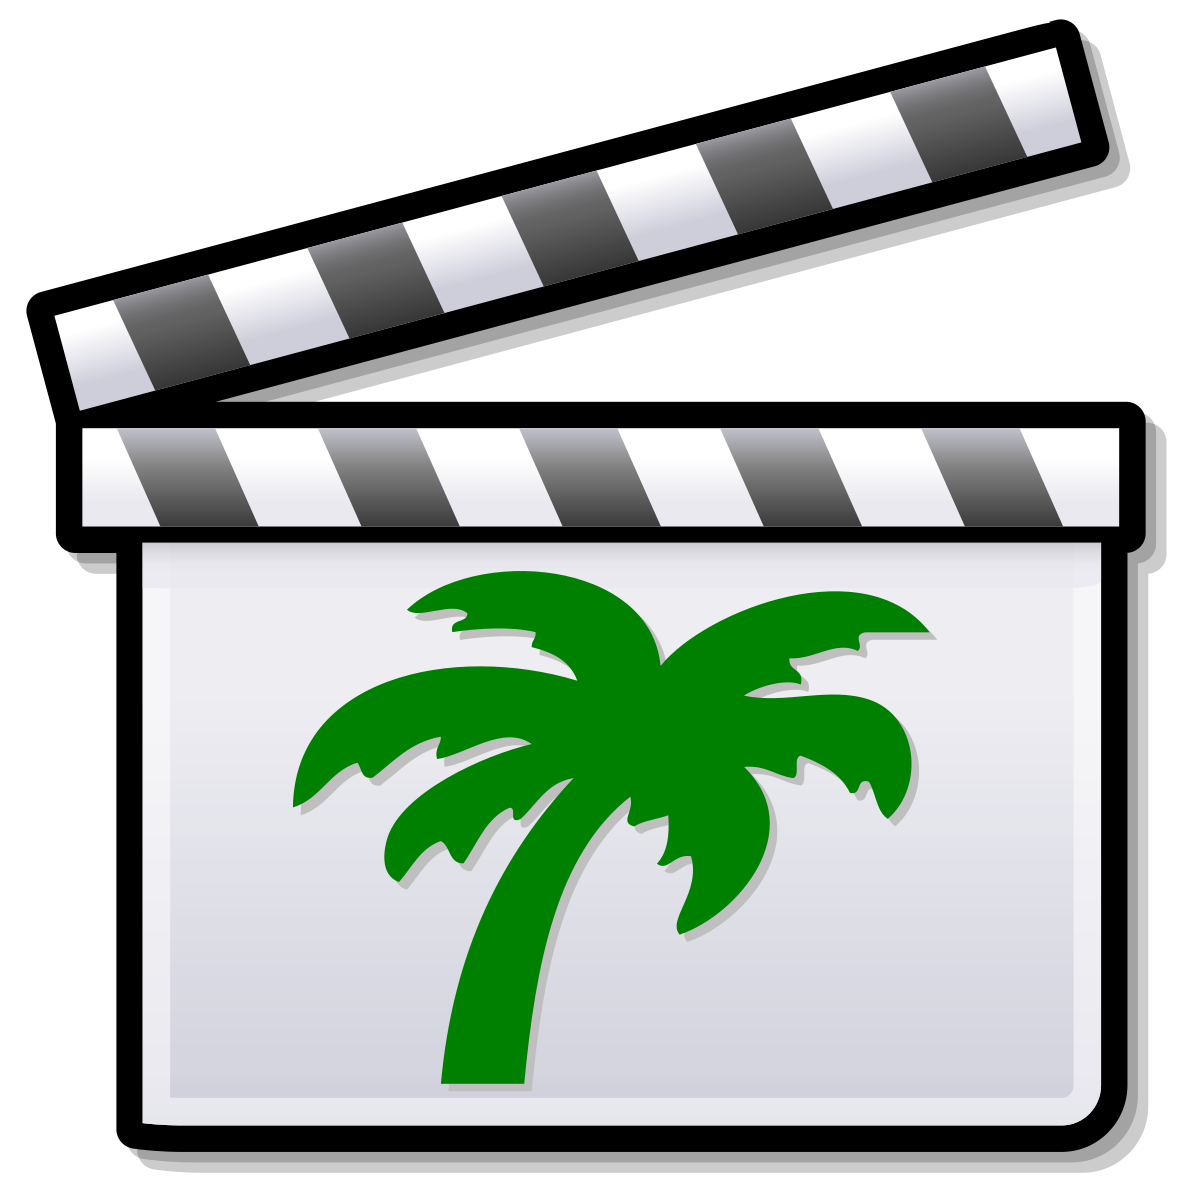 picture royalty free Adventure clipart adventure movie. Lists of films wikipedia